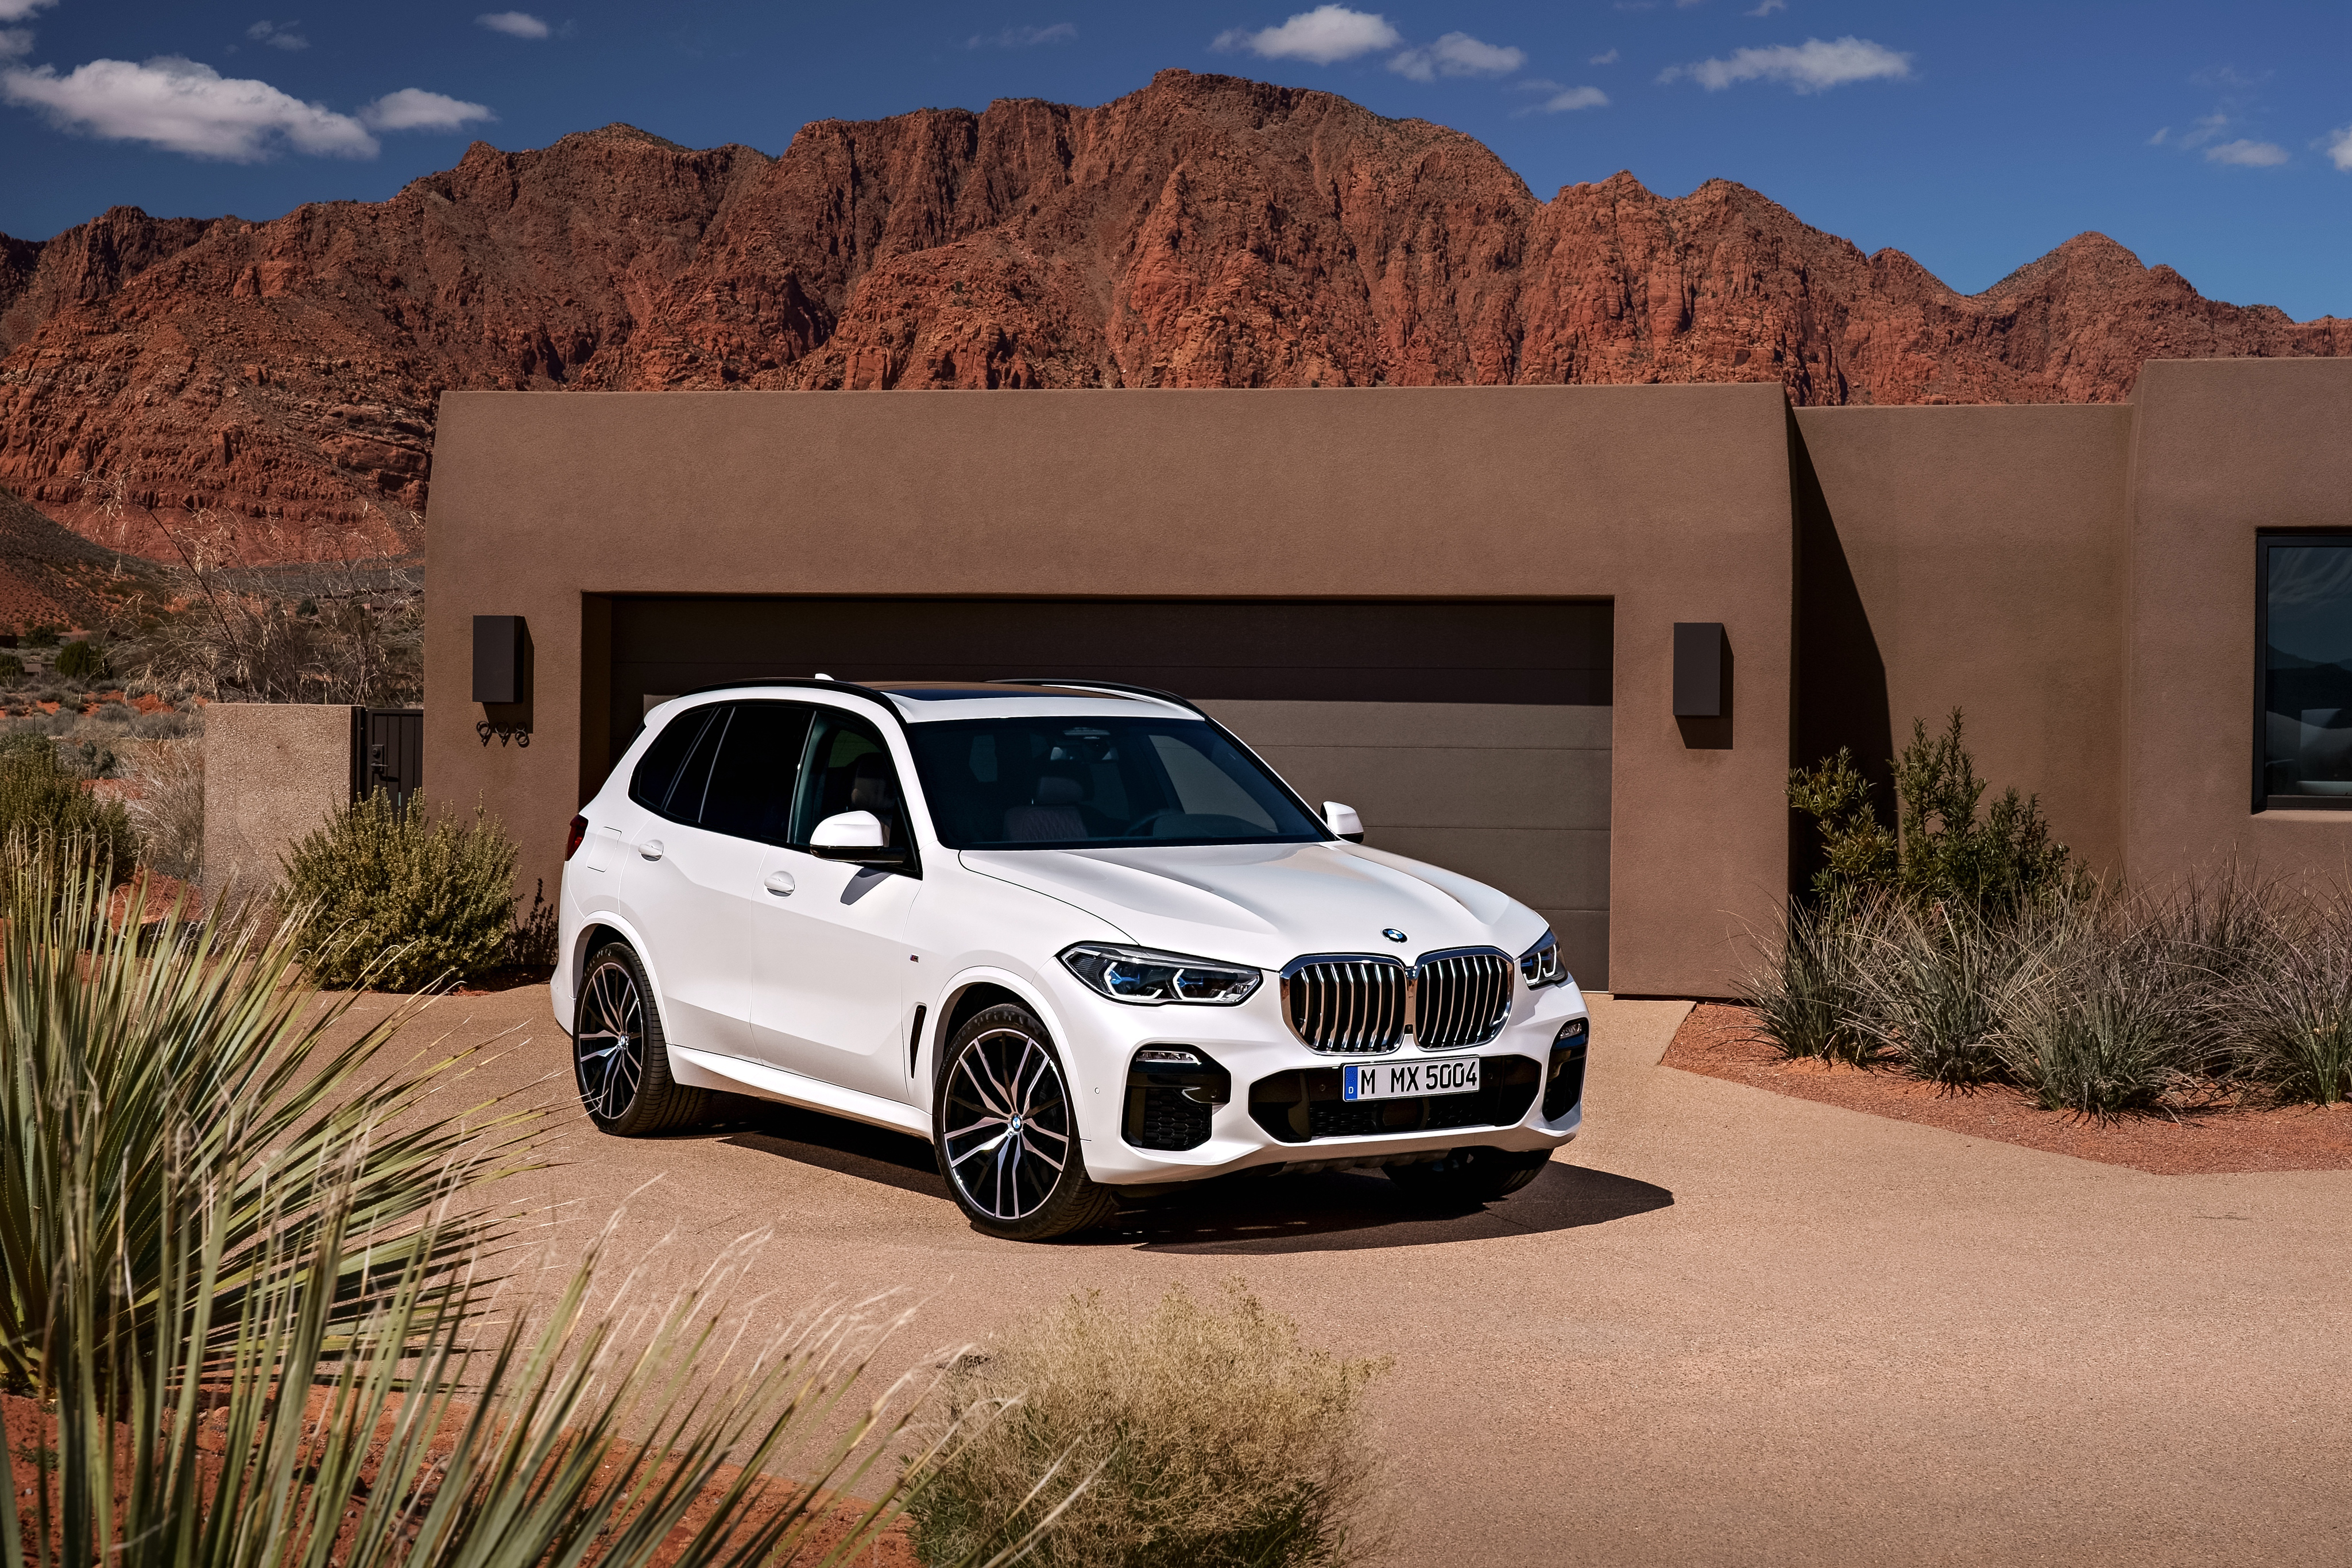 Bmw X5 4k Ultra Hd Wallpaper Background Image 4096x2731 Id